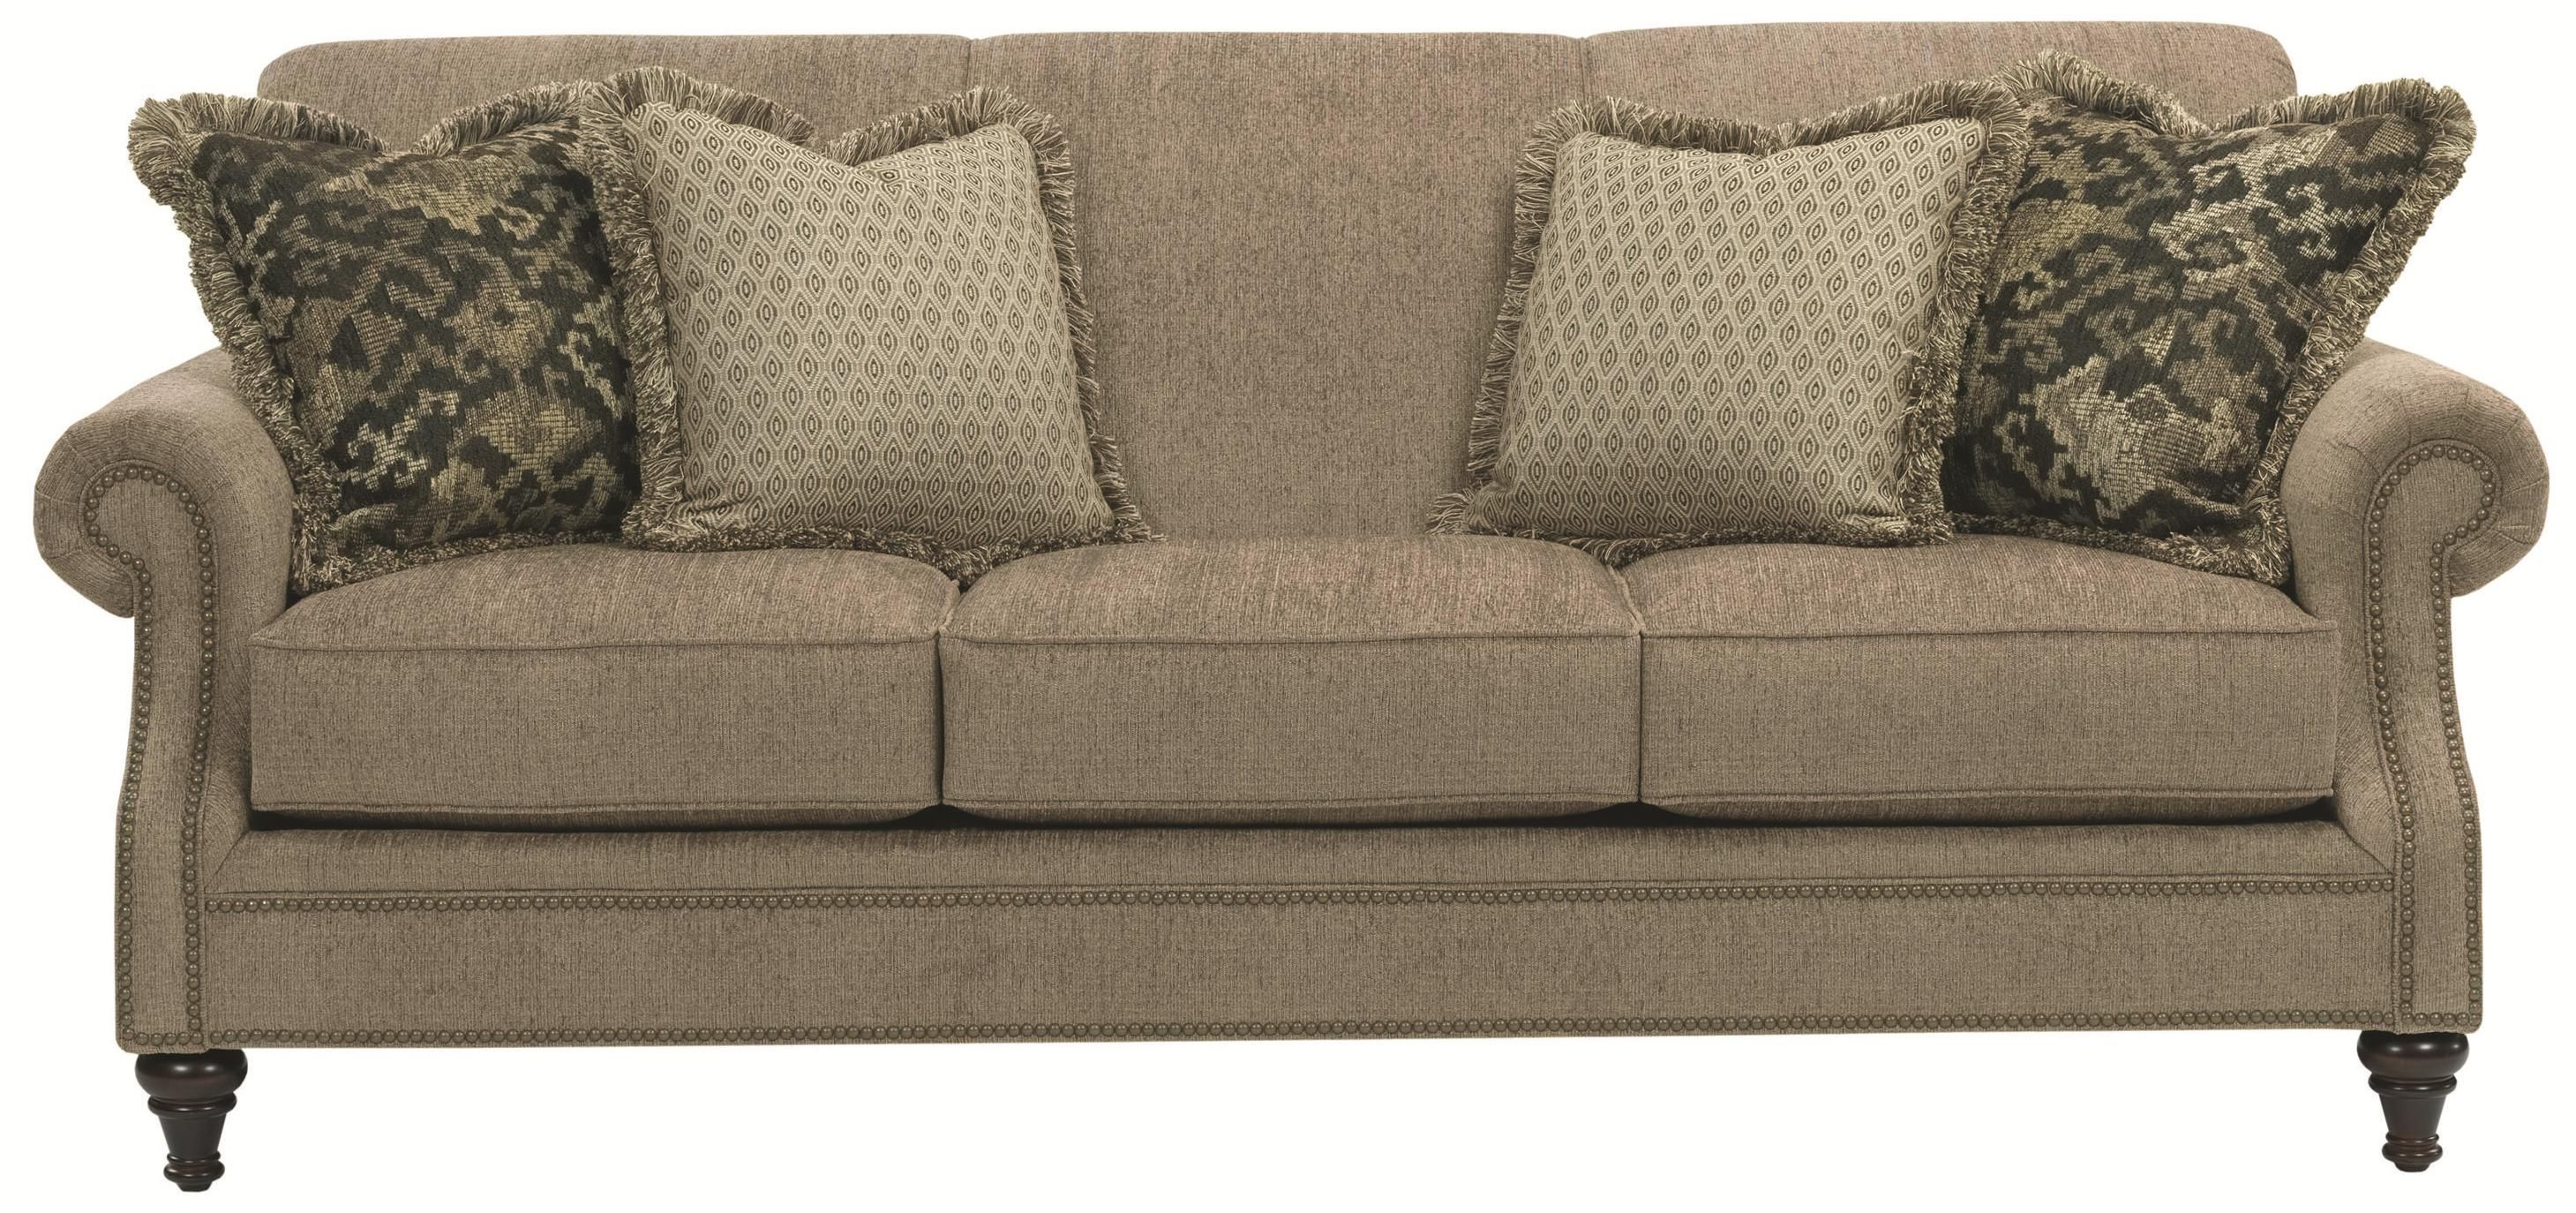 Broyhill Furniture Windsor Sofa With Rolled Arms   Gardiners Furniture    Sofa Baltimore, Towson, Pasadena, Bel Air, Westminster, Catonsville,  Maryland